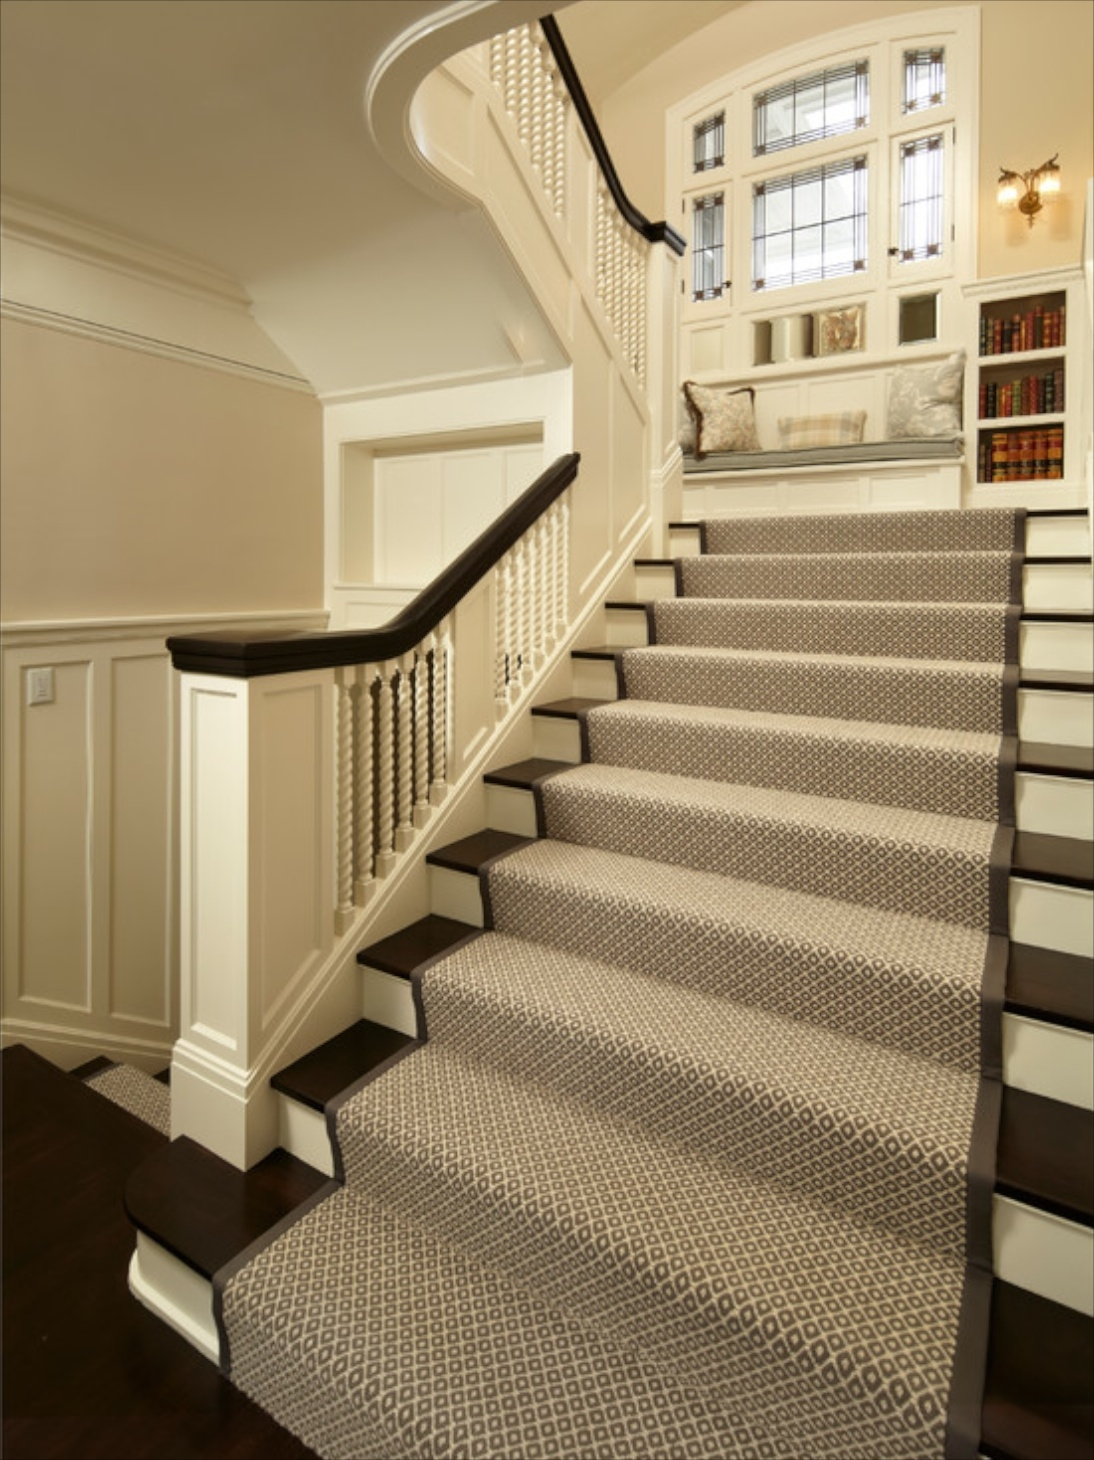 Making Stairs Safe With Stair Tread Rug Pads (#15 of 20)